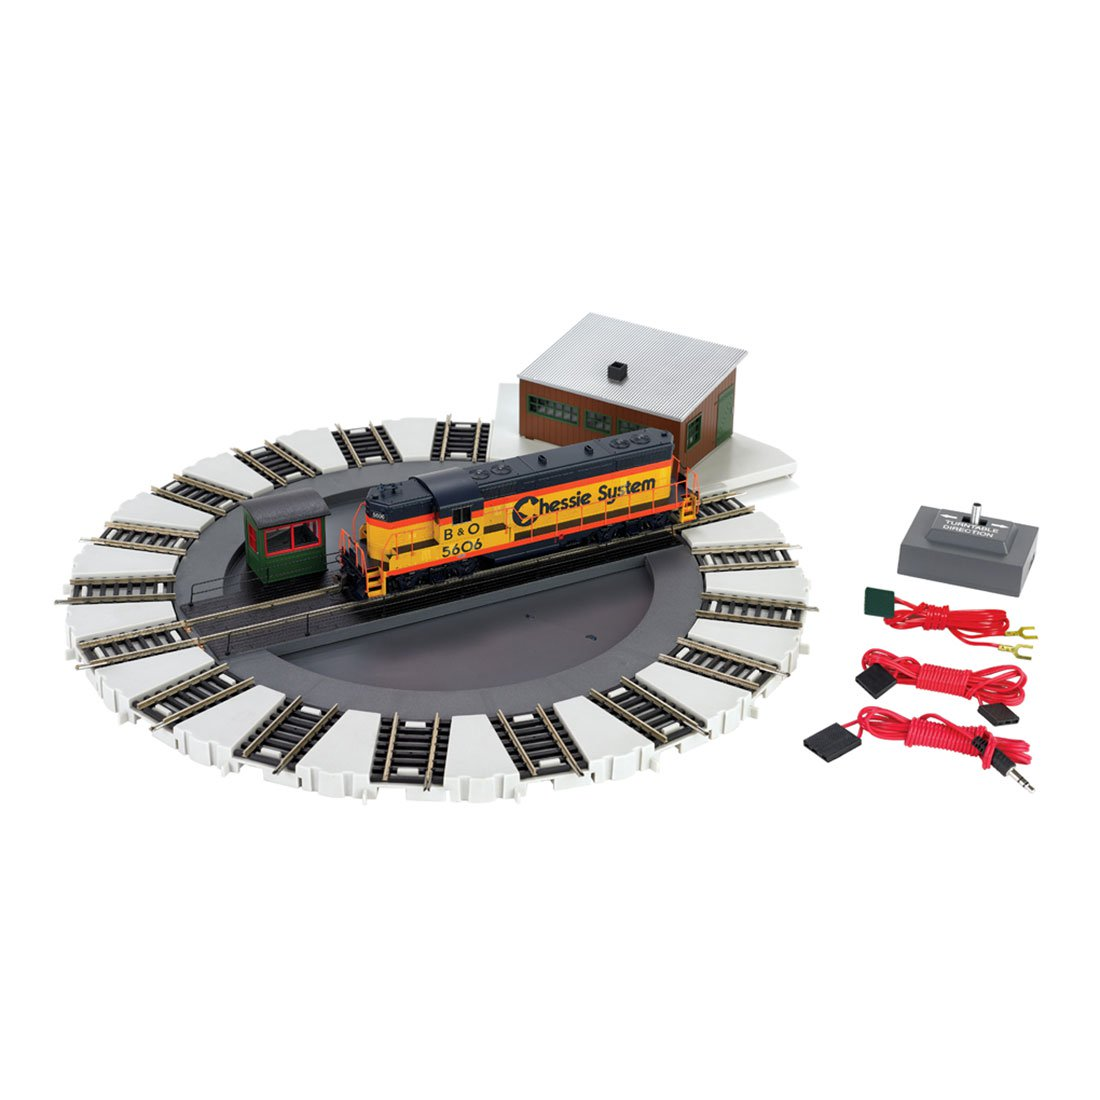 Bachmann Trains HO Scale Motorized Electric Train E-Z Track Turntable | 46299 by Bachmann Trains